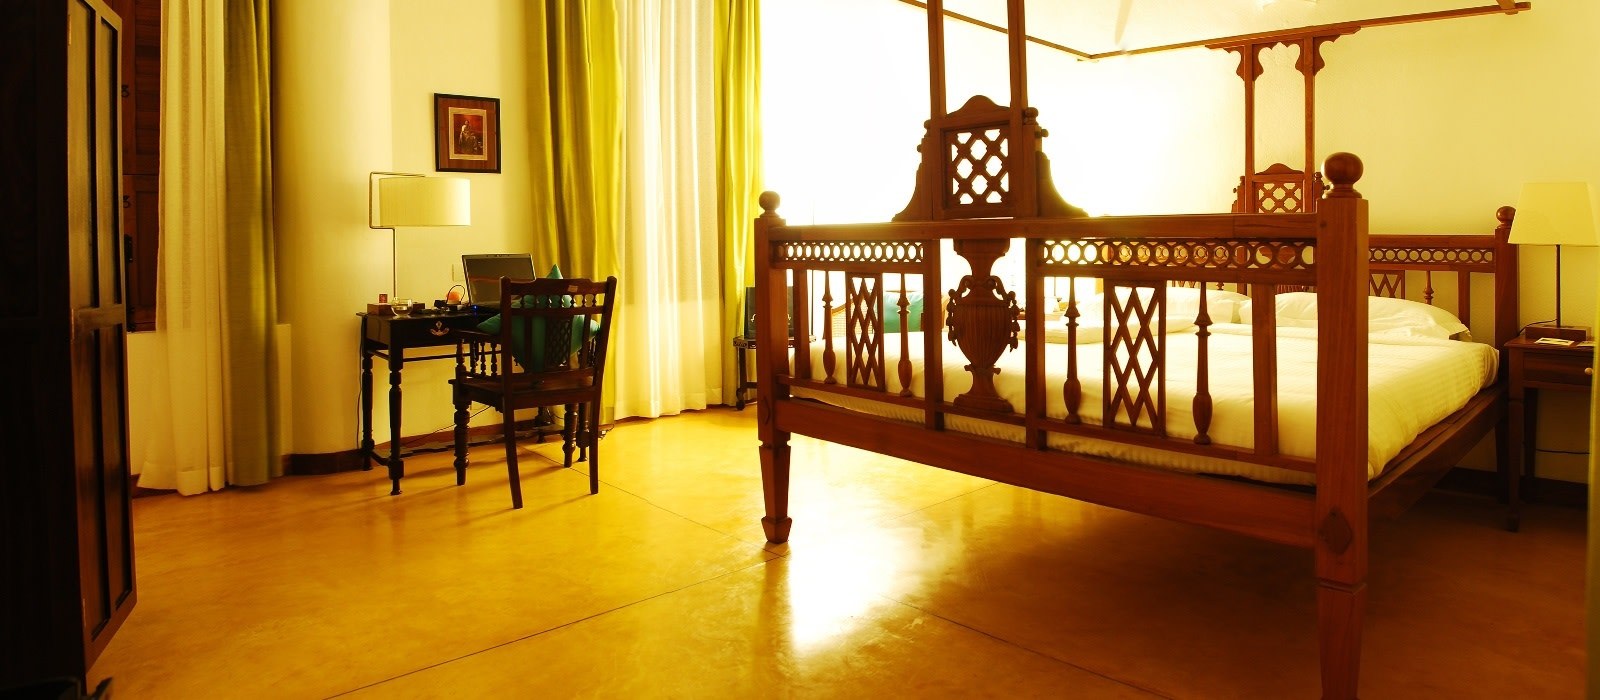 Hotel Maison Perumal South India